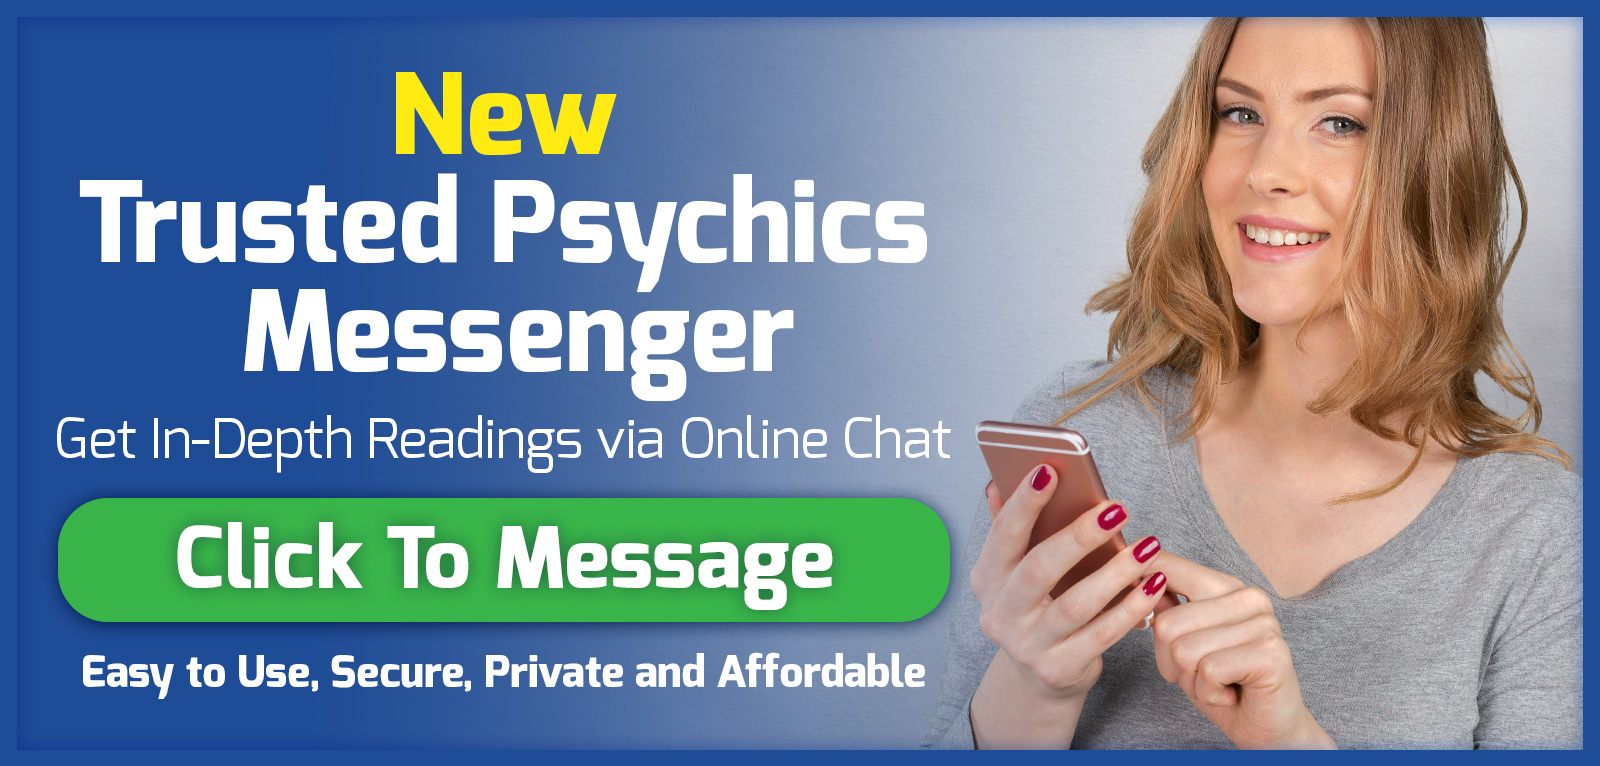 New Psychic Messenger Service